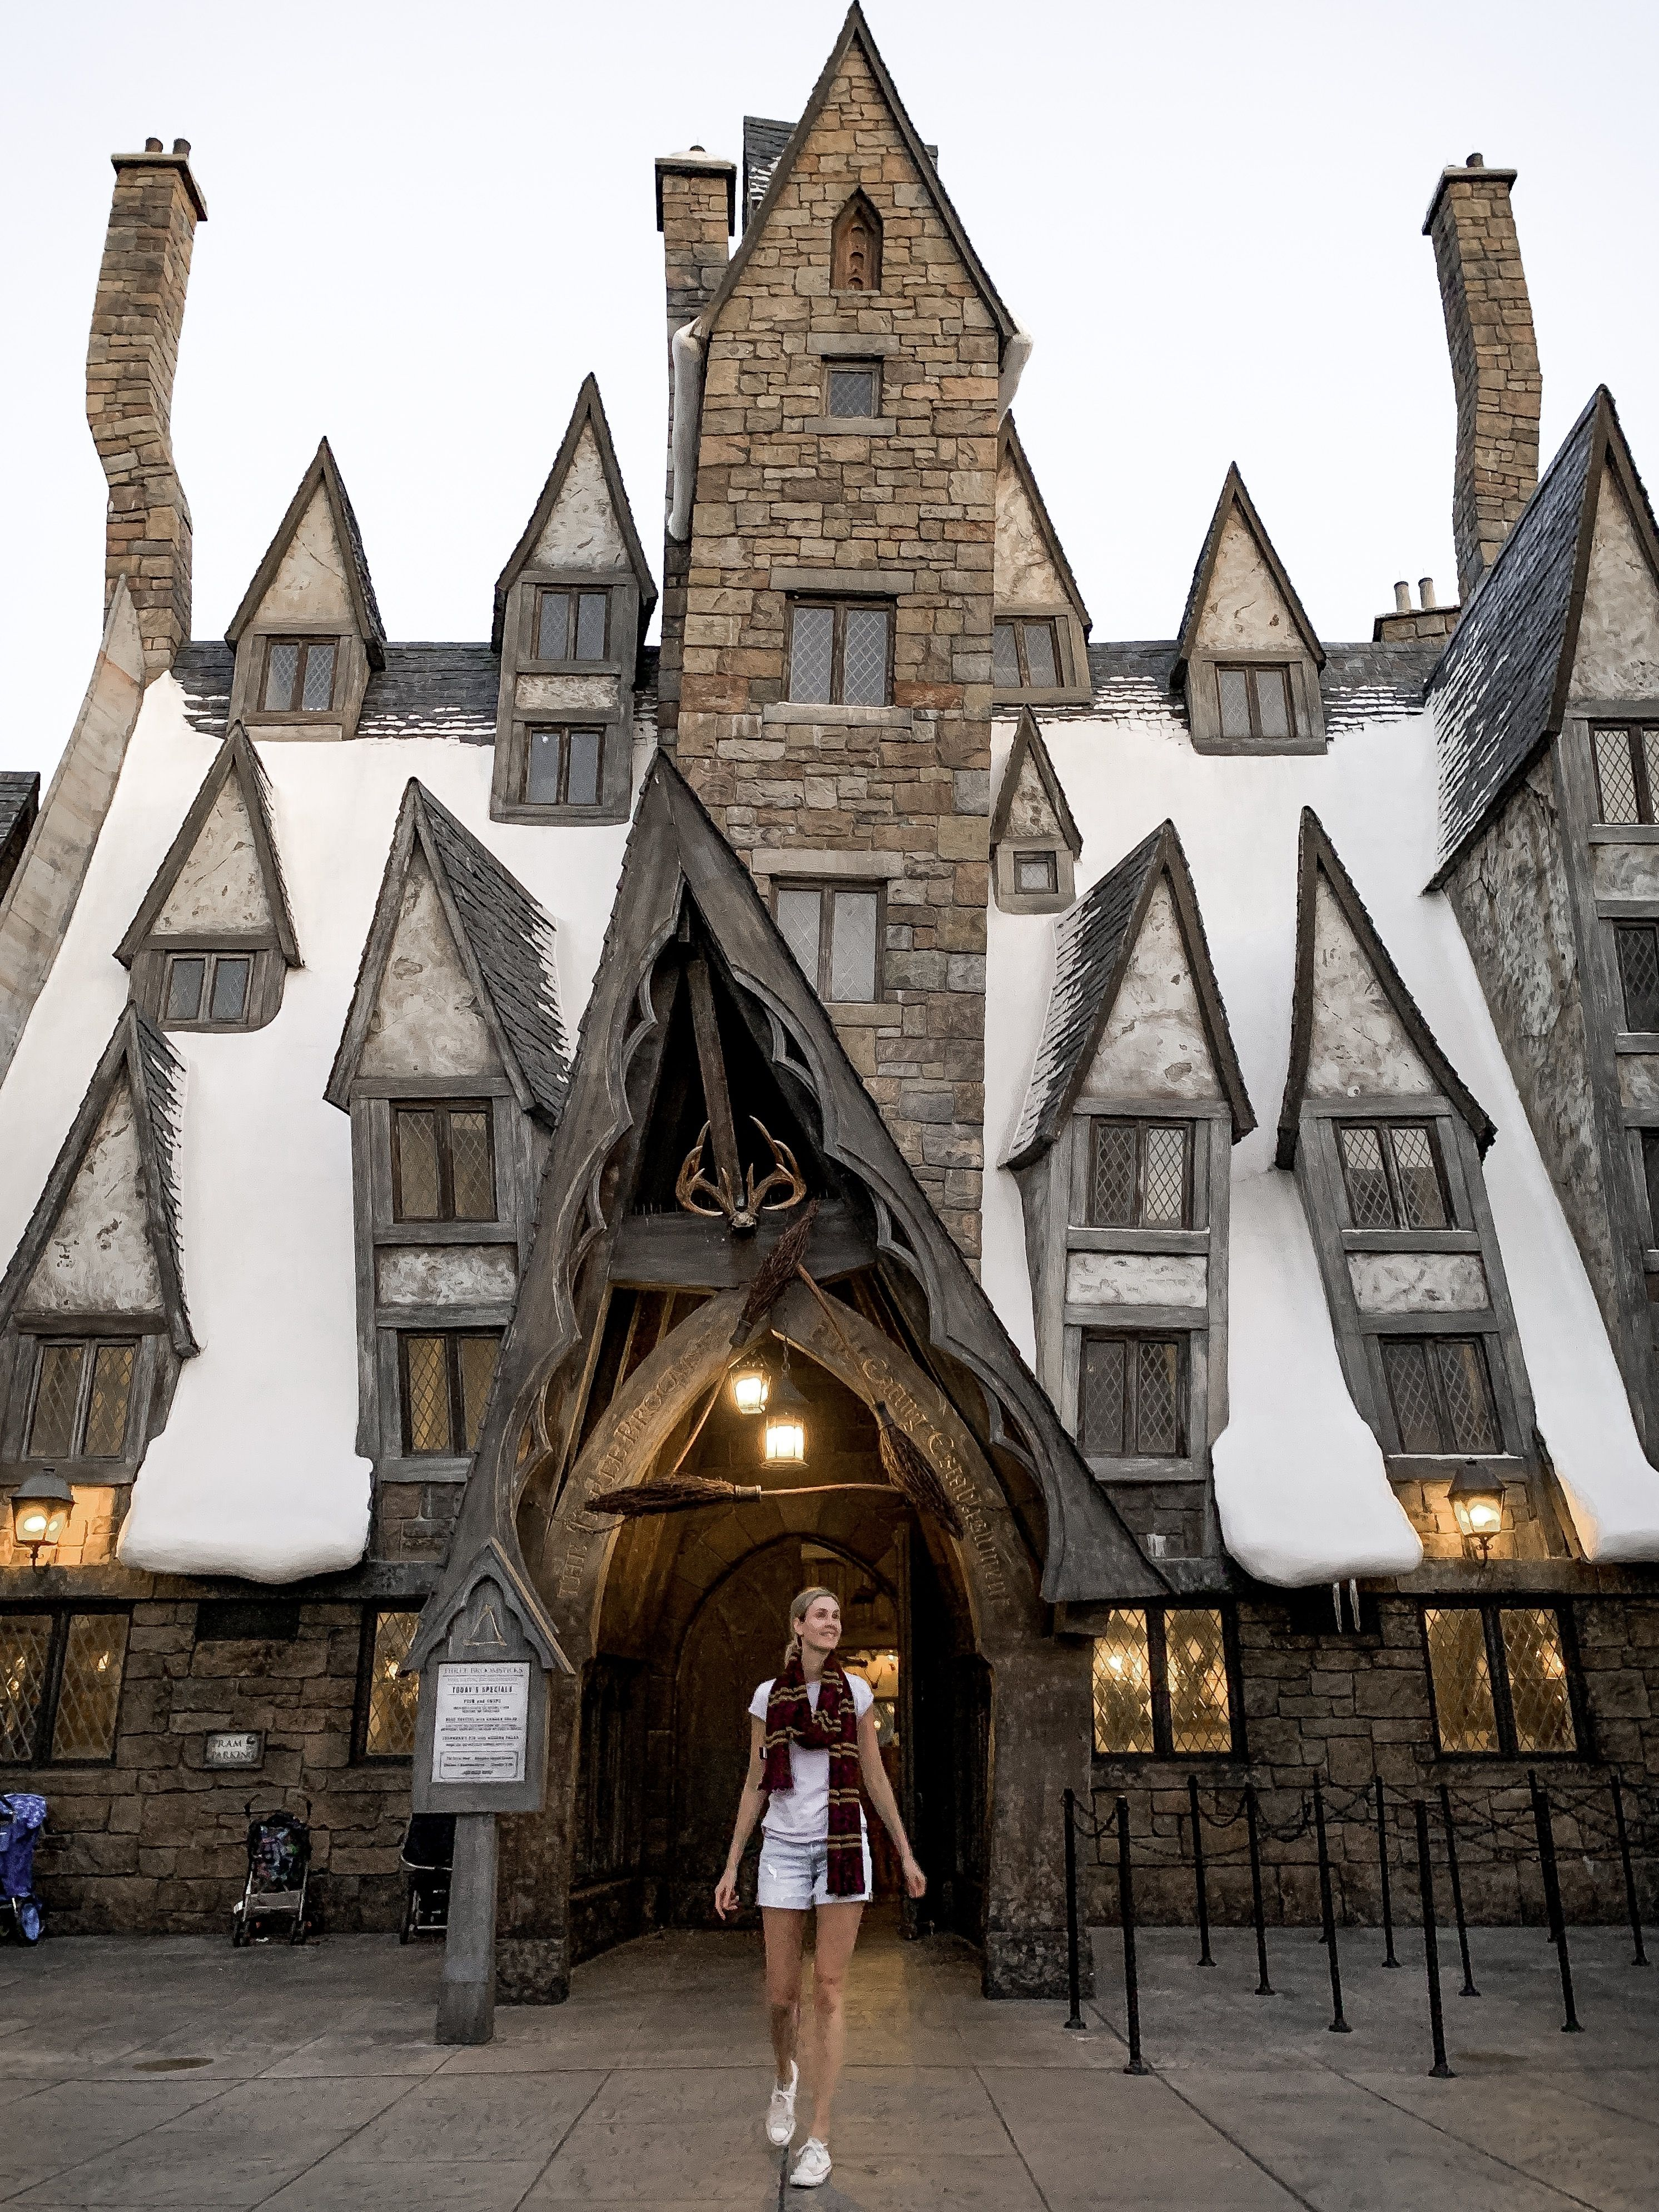 25 Photos That Will Inspire You To Visit The Wizarding World Of Harry Potter Ashlea Paige Universal Studios Orlando Harry Potter Universal Studios Harry Potter Orlando